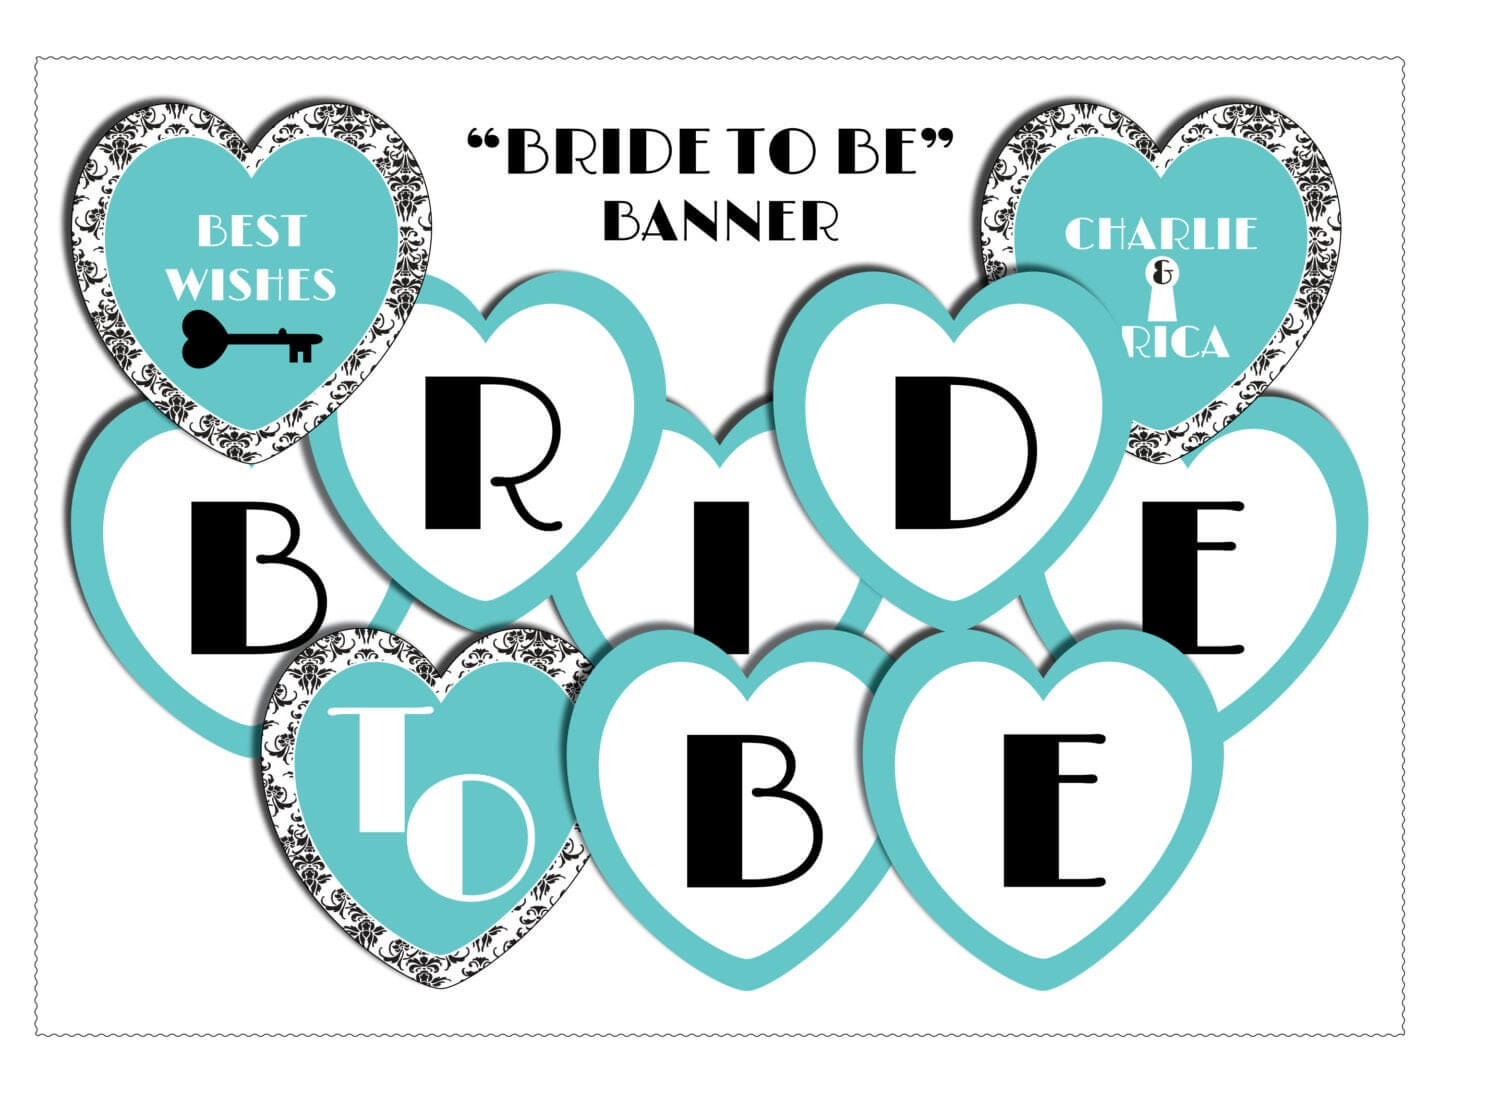 Free Bridal Shower Party Printables From Love Party Intended For Bride To Be Banner Template